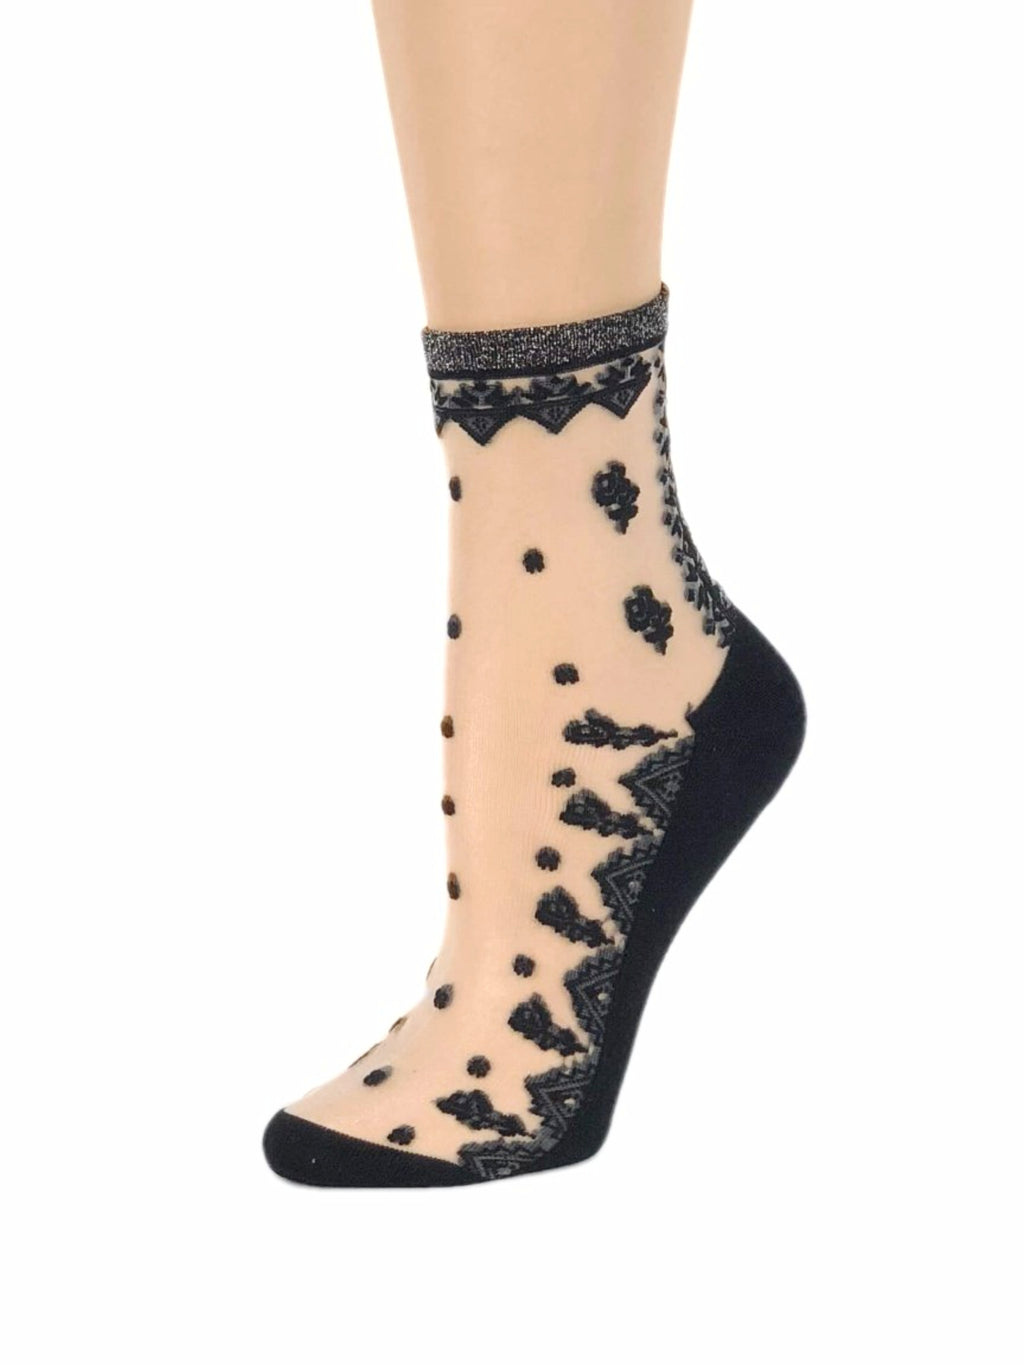 Dark Black Sheer Socks - Global Trendz Fashion®